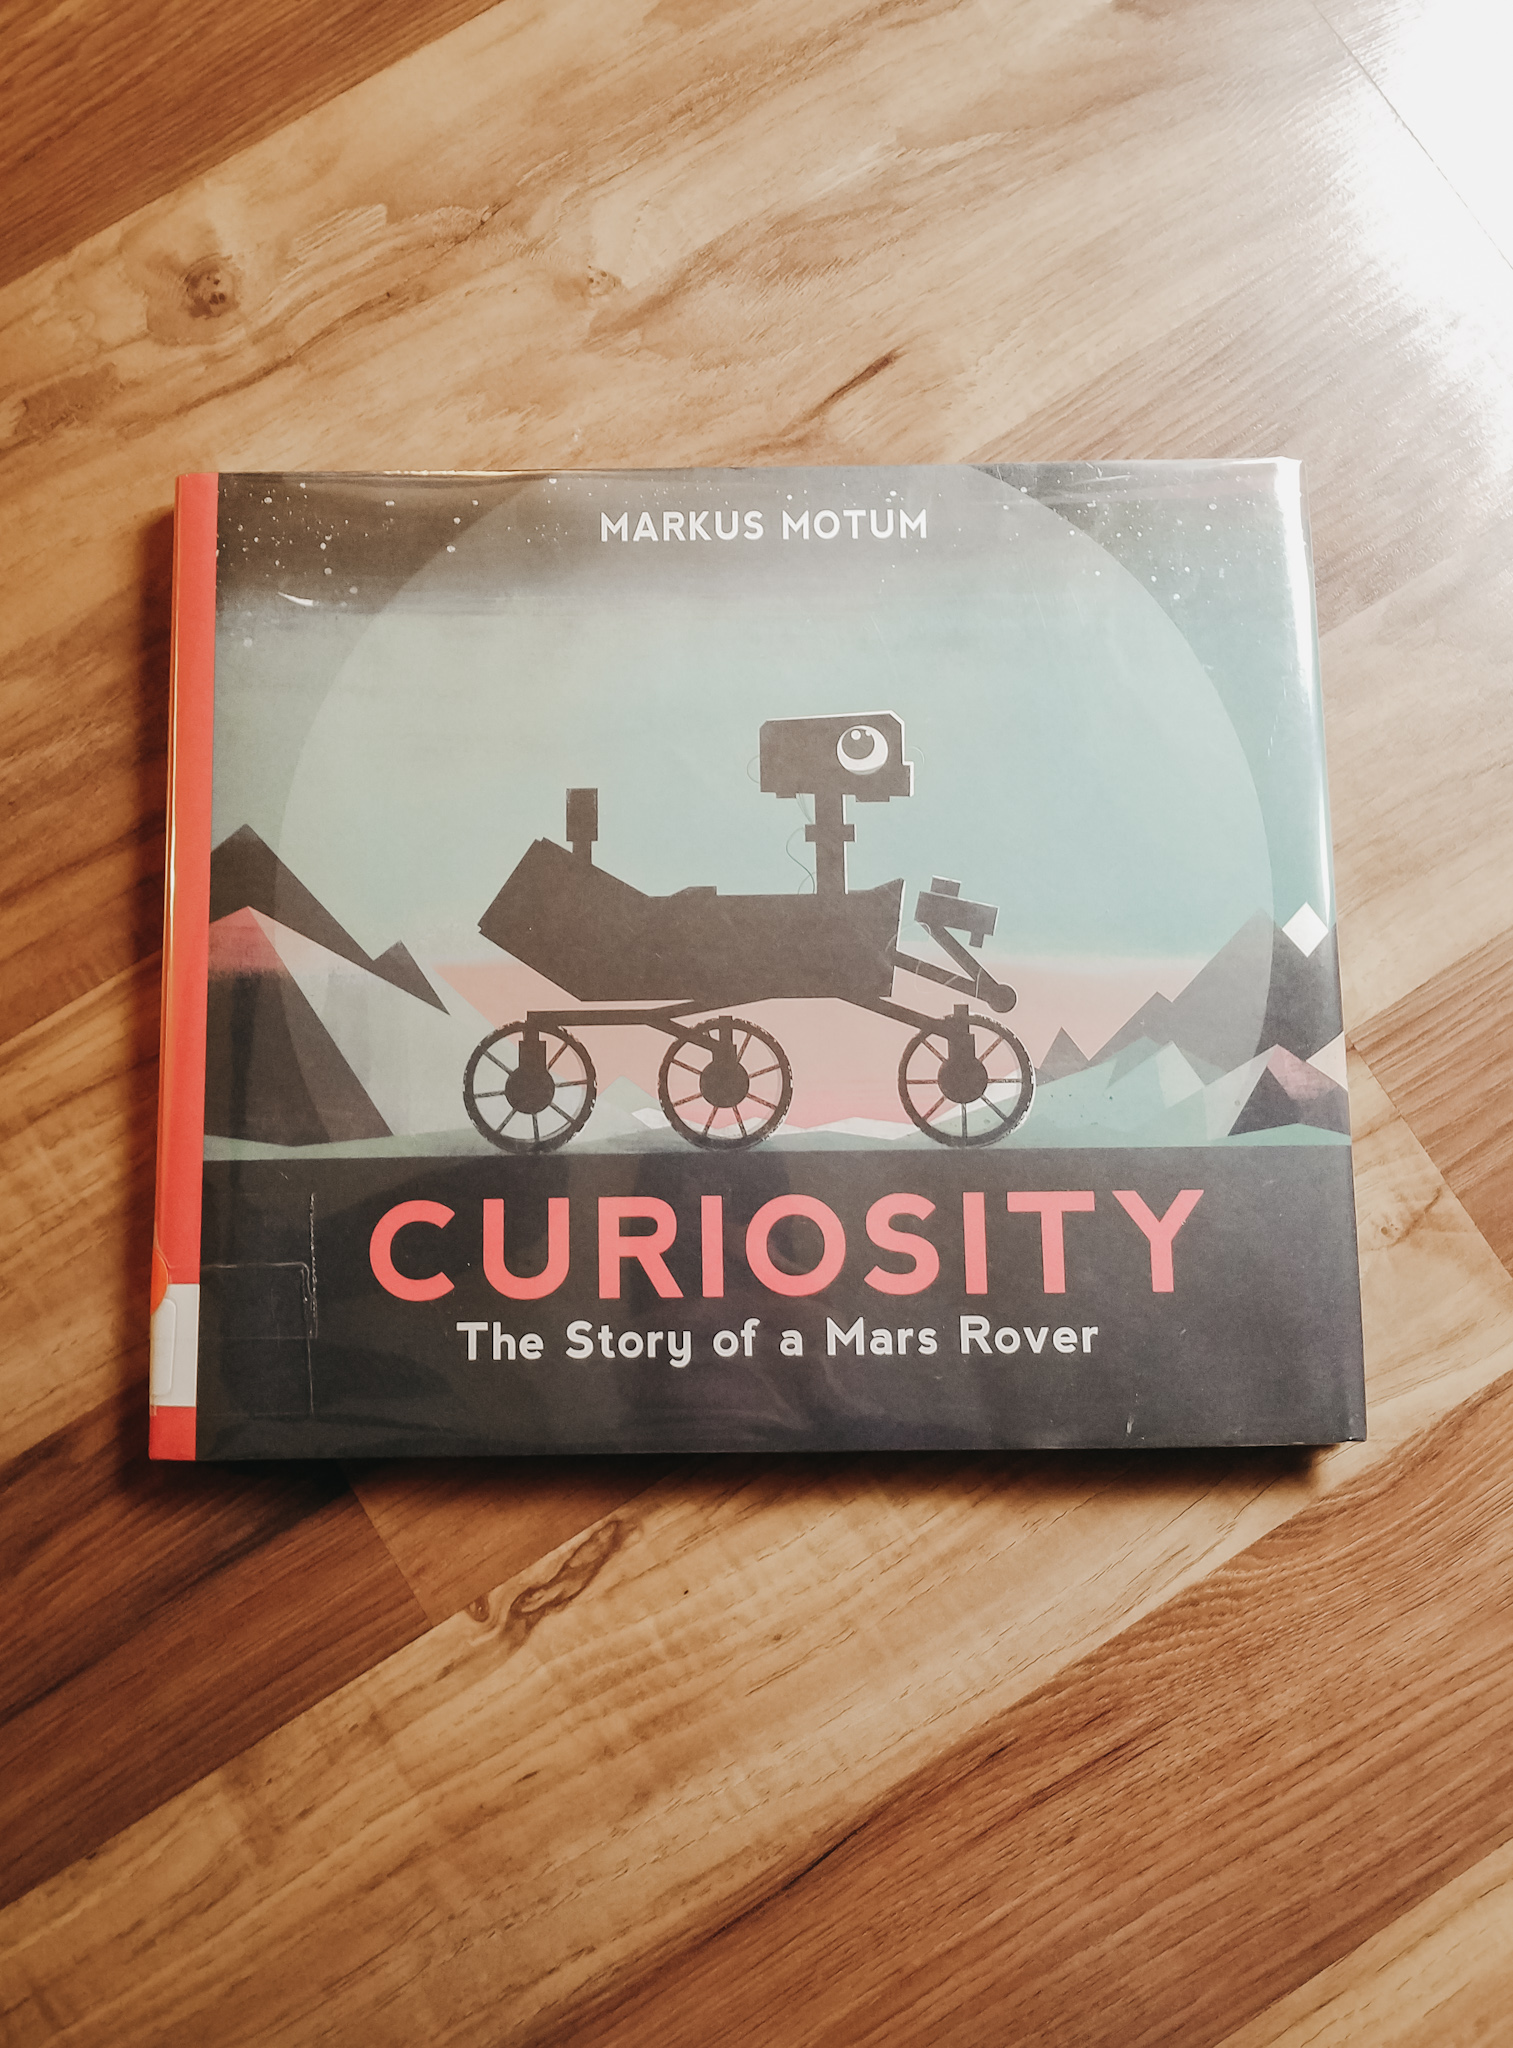 Curiosity: The Story of Mars Rover